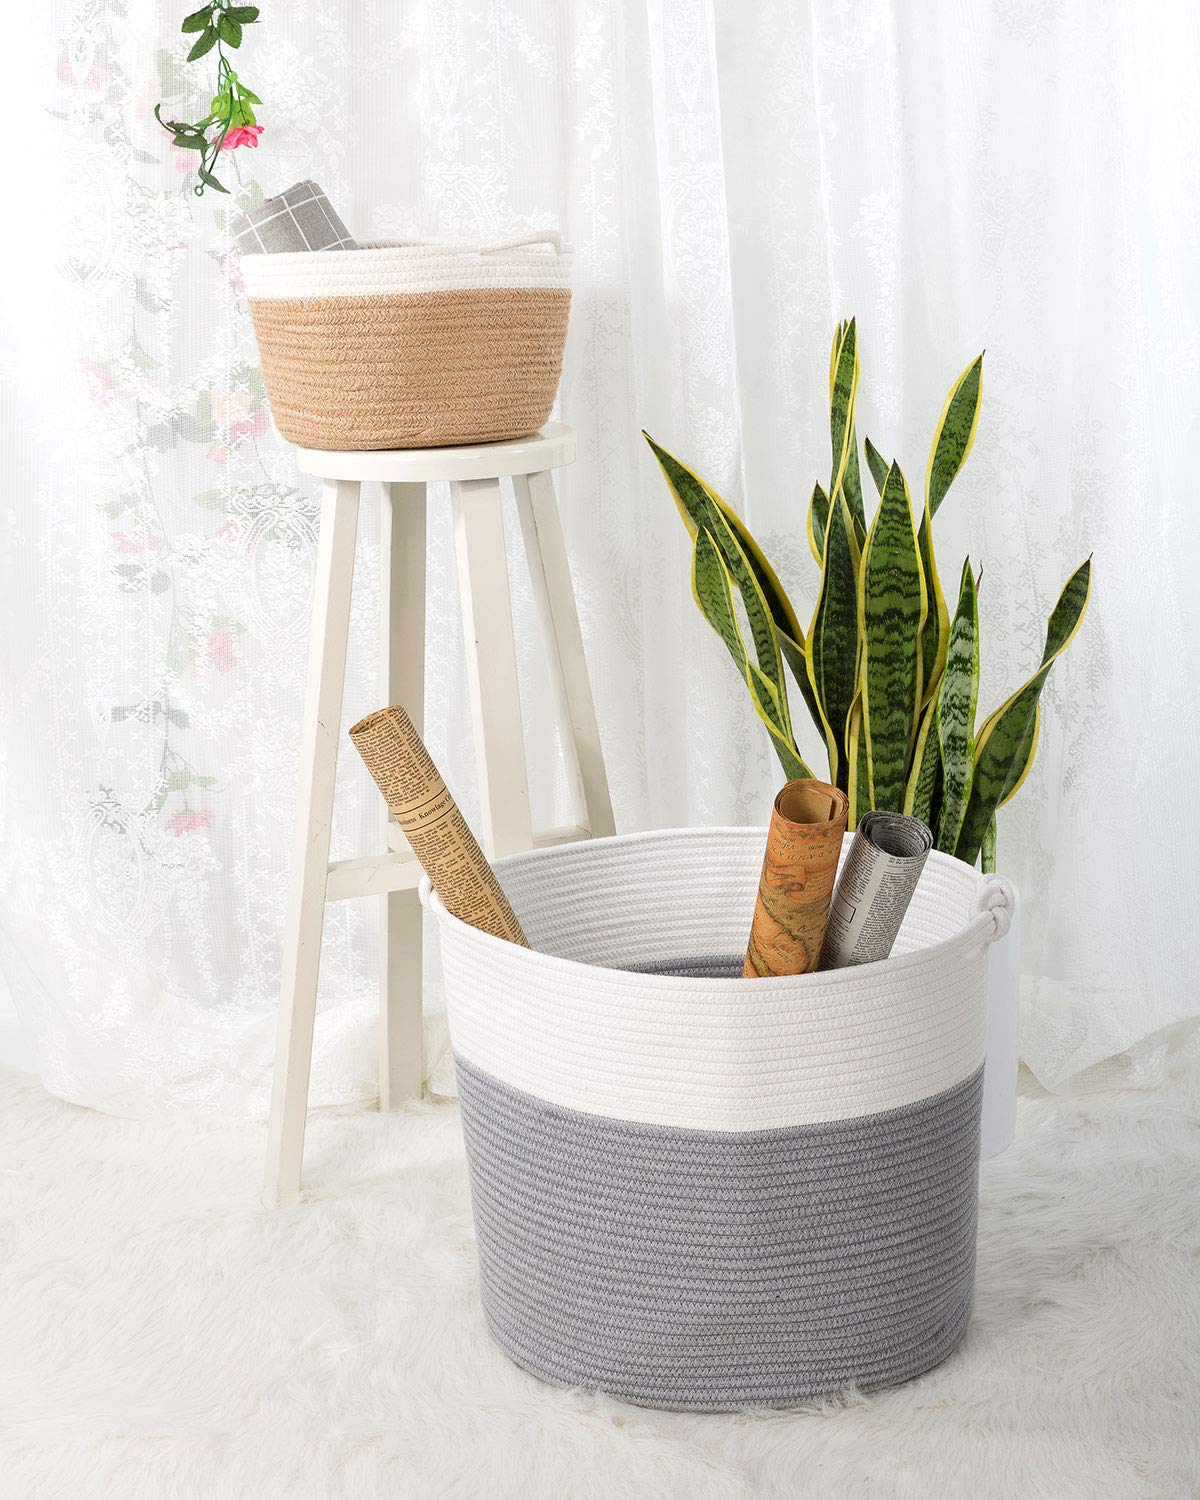 15 /× 15 /× 14.2 Goodpick Cotton Rope Basket with Handle for Baby Laundry Basket Toy Storage Basket Blanket Storage Nursery Basket Soft Storage Bins Natural Woven Basket